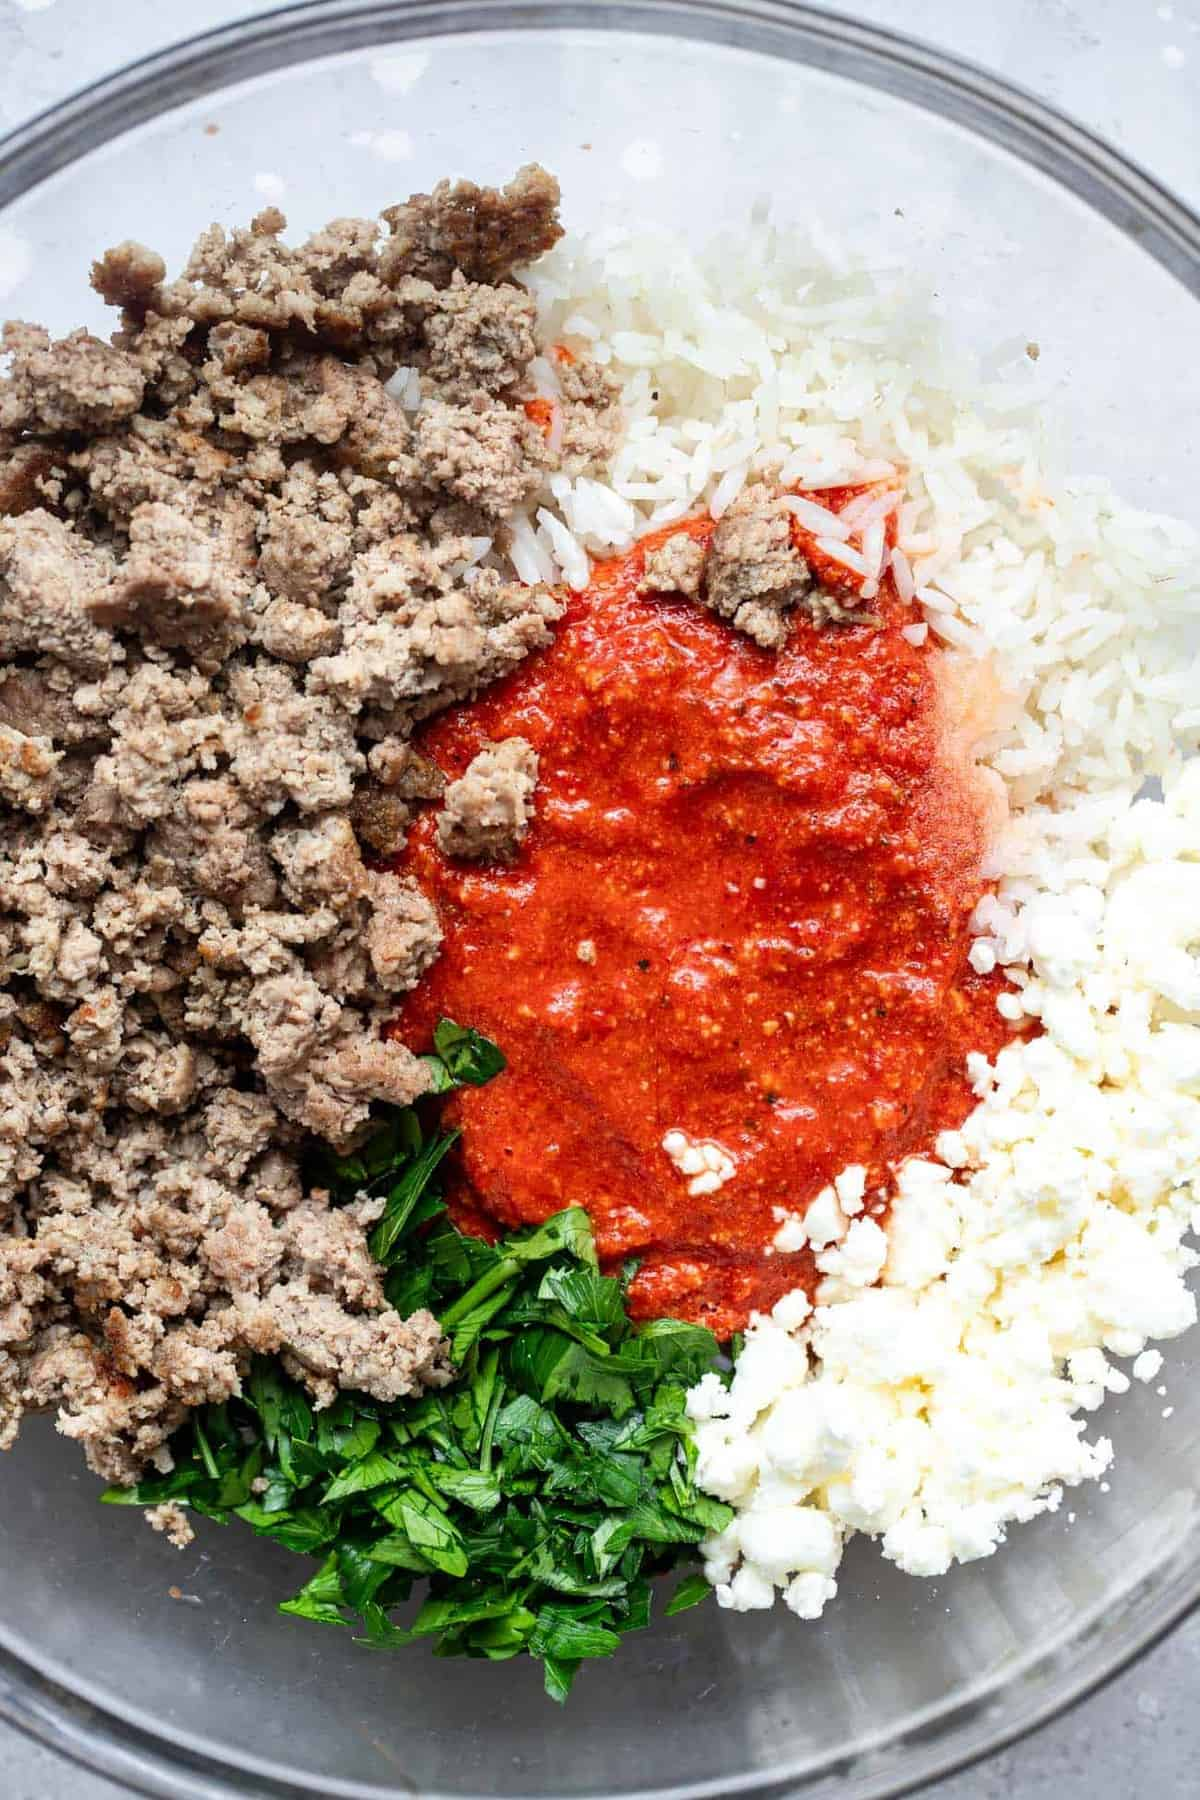 Ingredients to make bbq stuffed peppers in a bowl